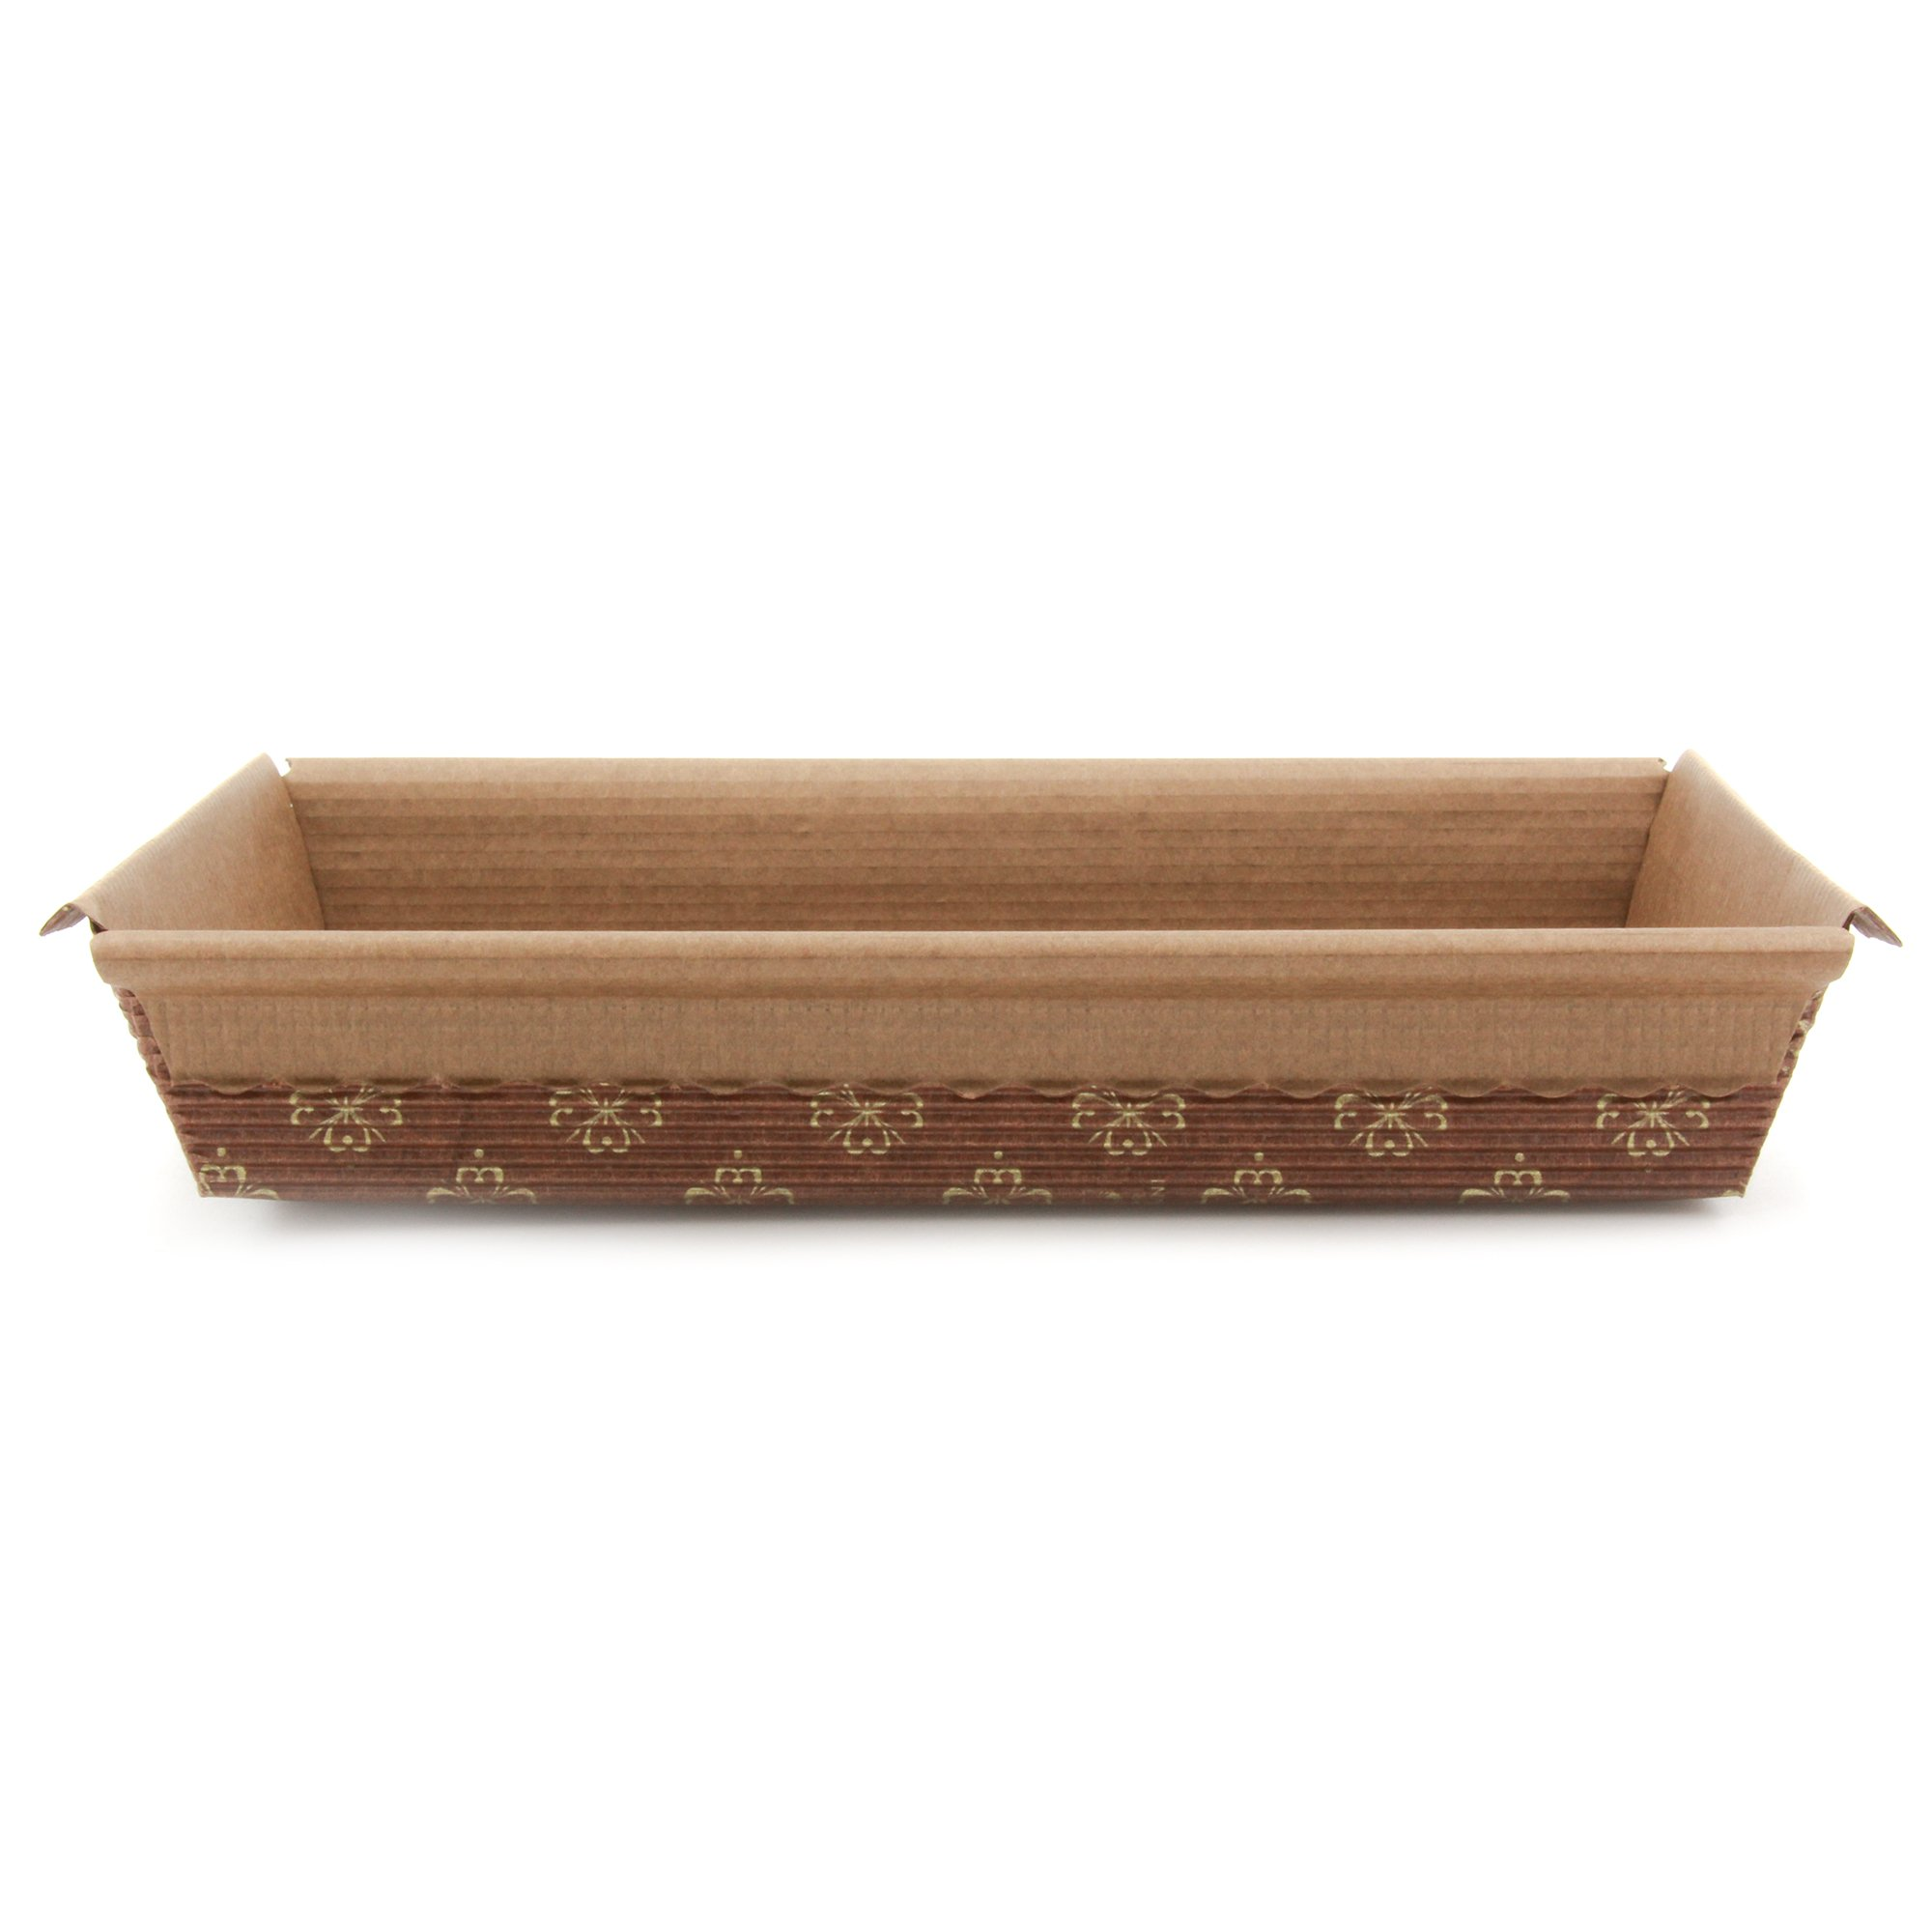 Paper Baking Pan Good For Anything You Wish To Bake In A Rectanglar Pans , Carrot Cake, Brownies 516836 L6-1/2''x w4-1/4''x 1-1/4''H (540) by Ecobake (Image #2)